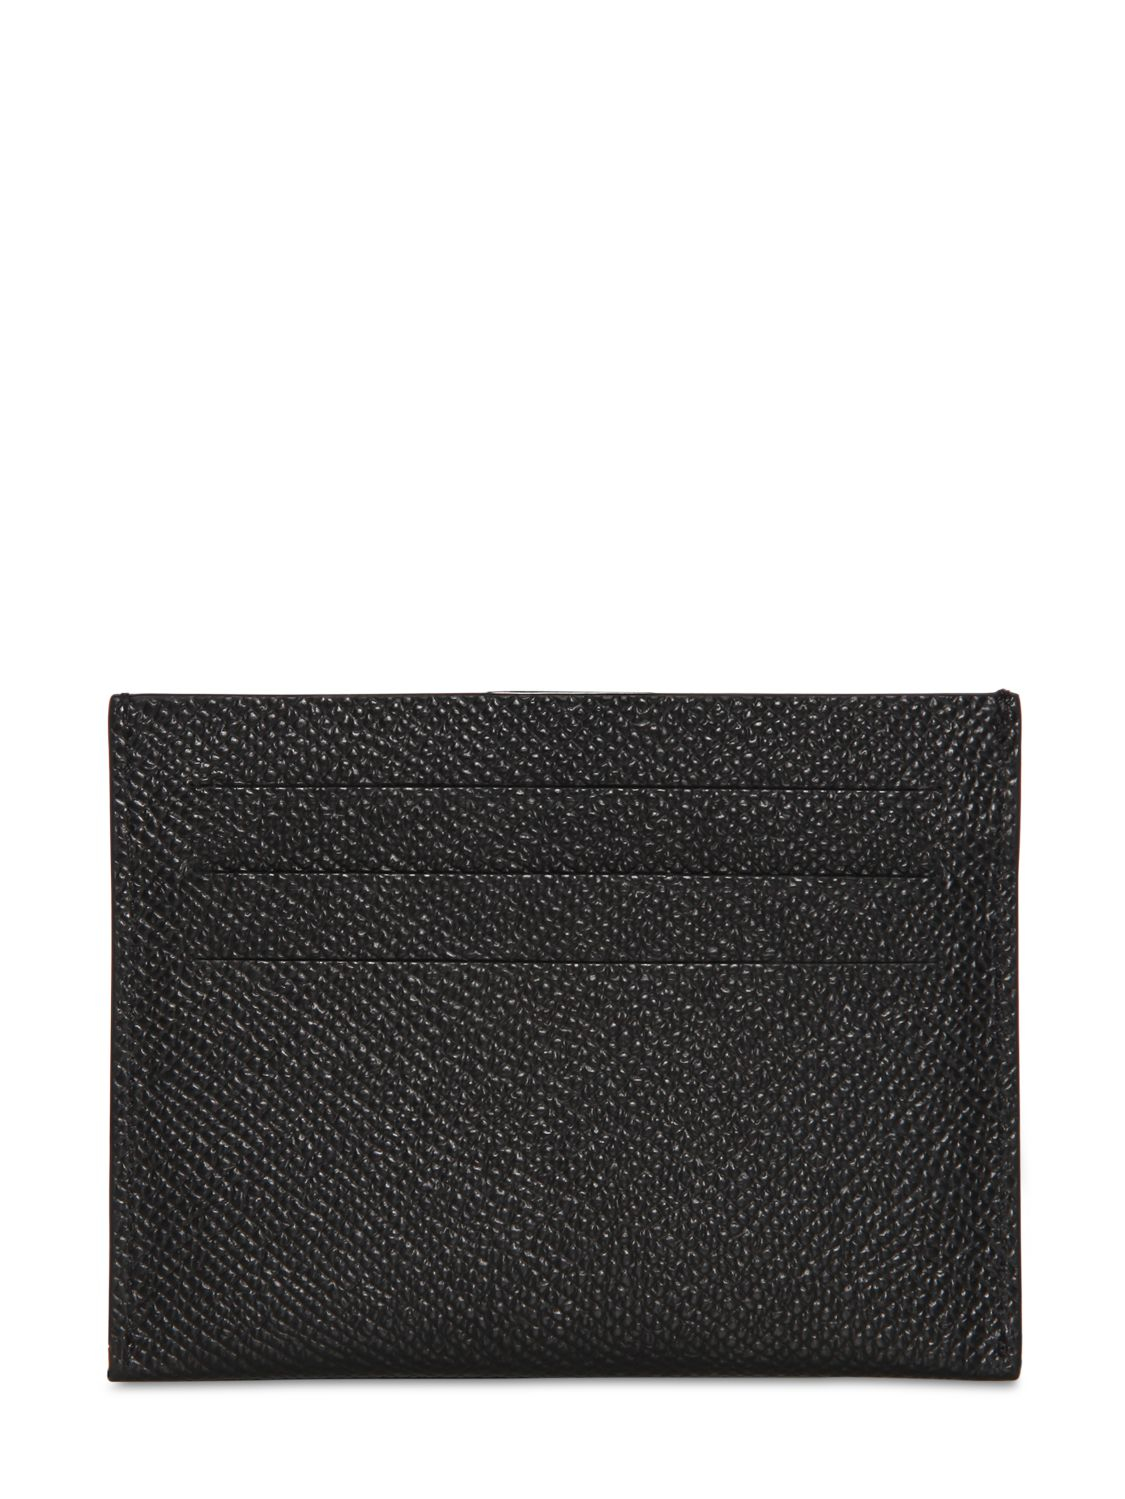 6b1e9a6b93de6 Lyst - Givenchy Textured Leather Card Holder in Black for Men